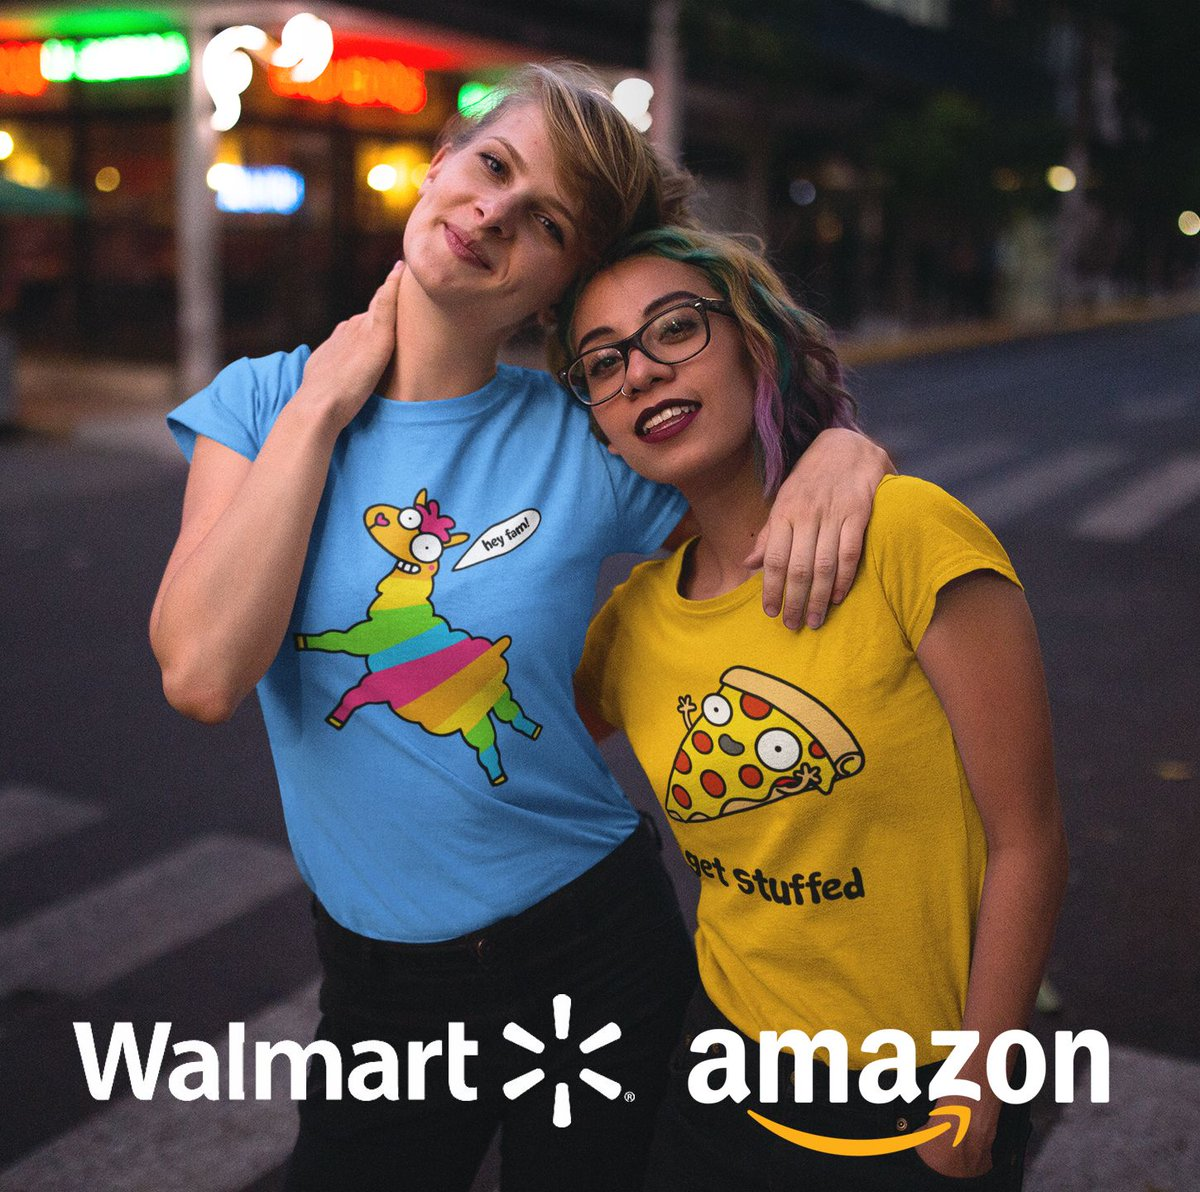 Express yourself with Flossy & Jim clothing and giftware available now at Walmart and Amazon! https://buff.ly/2K5CtLi #flossyandjim #kidsclothing #teenfashion #fashionforkids #coolclothingforkids #toptrends #unicornclothing #slothclothing #llamaclothing #parenting #shoppingpic.twitter.com/Pr298LTiVV